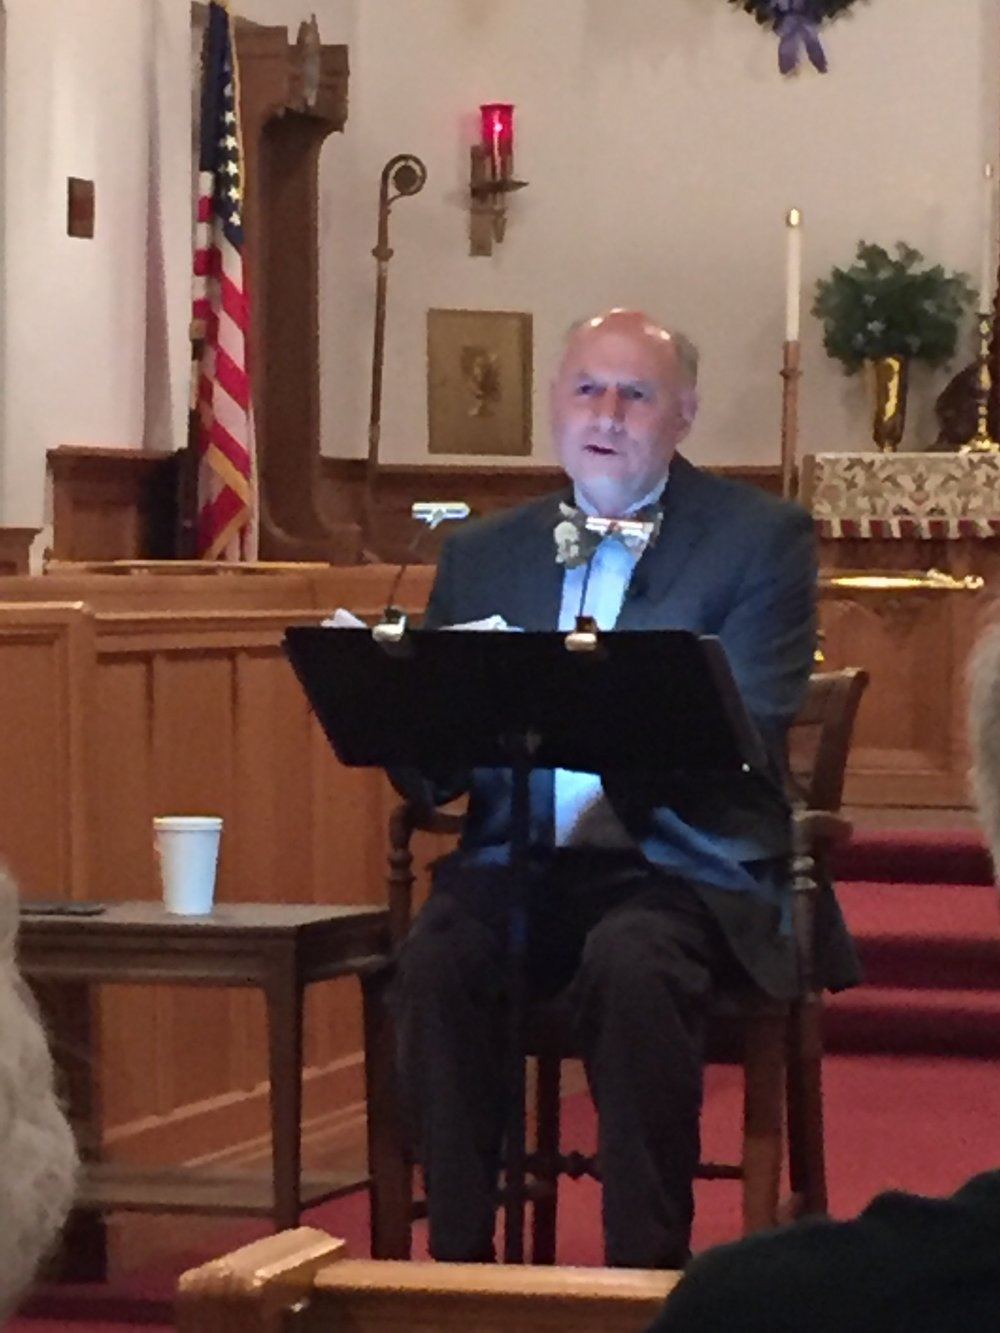 Bradley Wirth reading A Christmas Offertory 12.10.2018.jpg